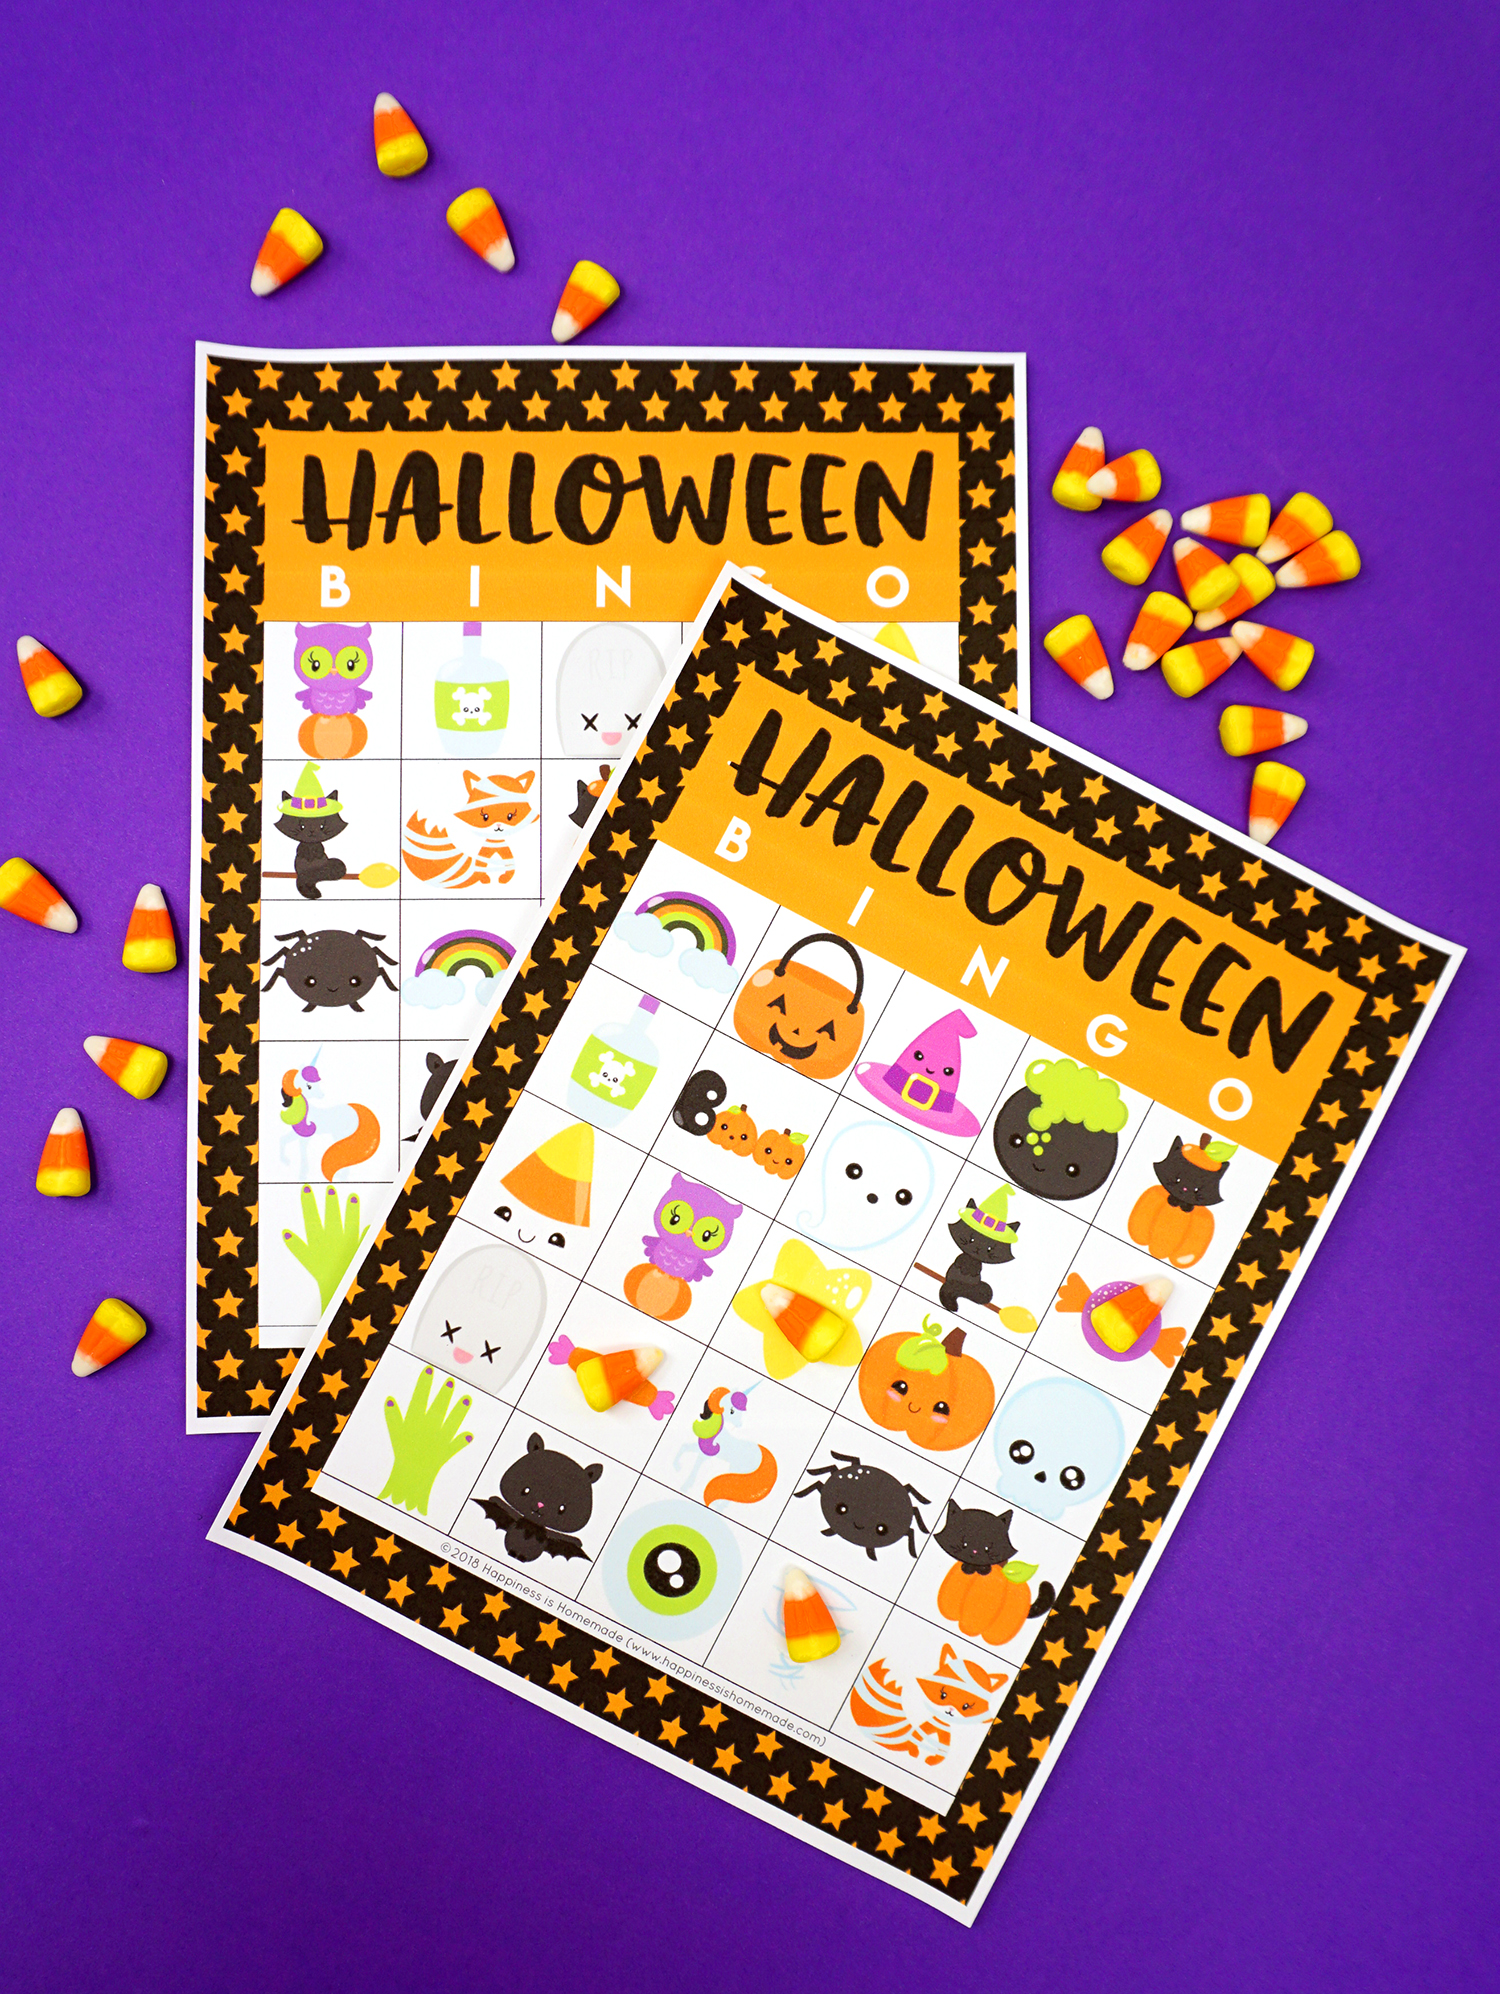 Printable Halloween Bingo Game Cards with Candy Corn